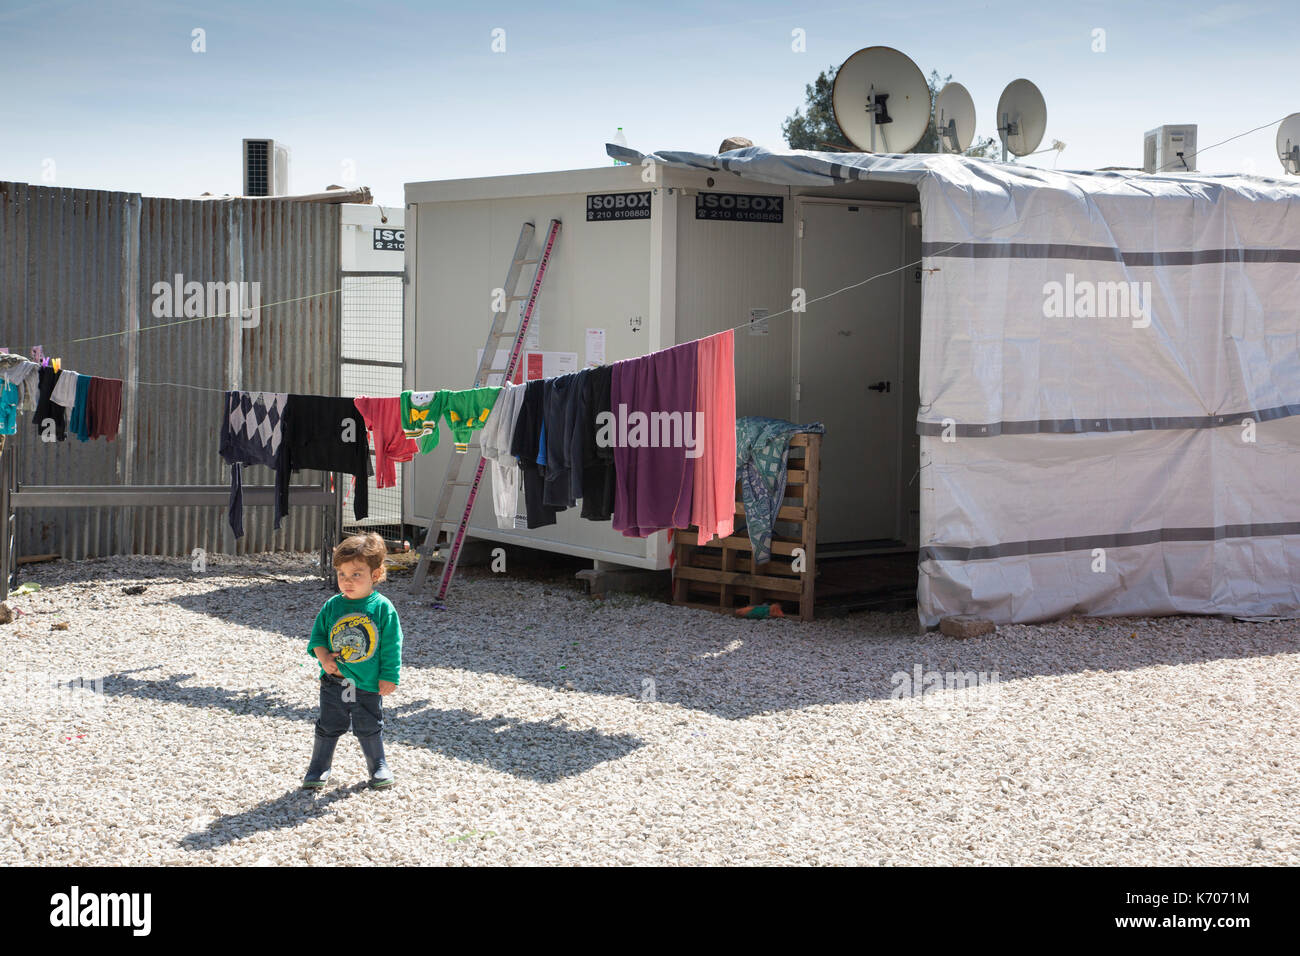 On the gravel between prefabricated units housing refugees from Syria, a lone child surveys Ritsona Refugee Camp. - Stock Image